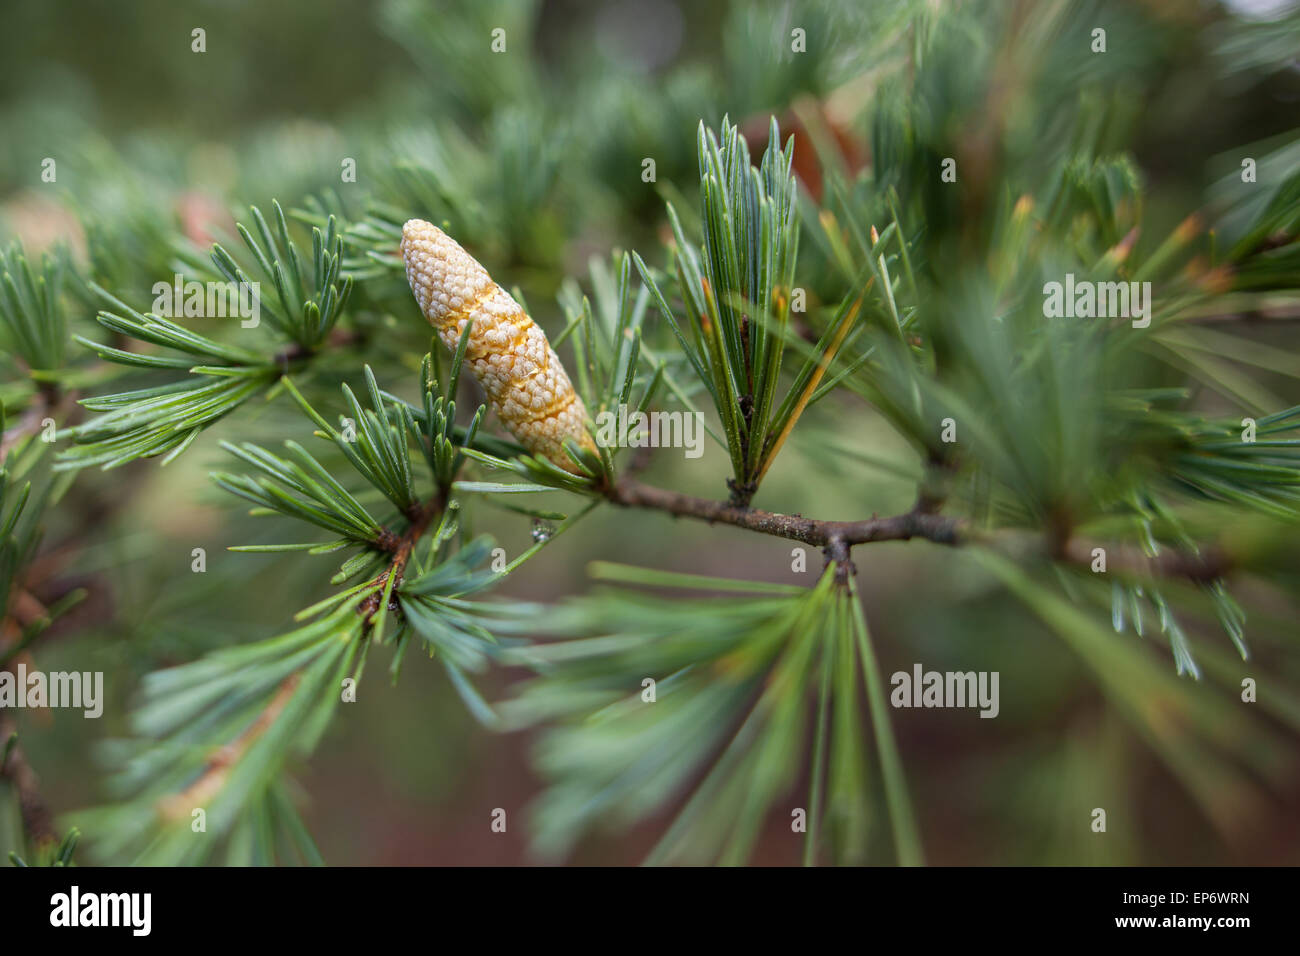 Young conifer pine shoot macro with blurred background - Stock Image